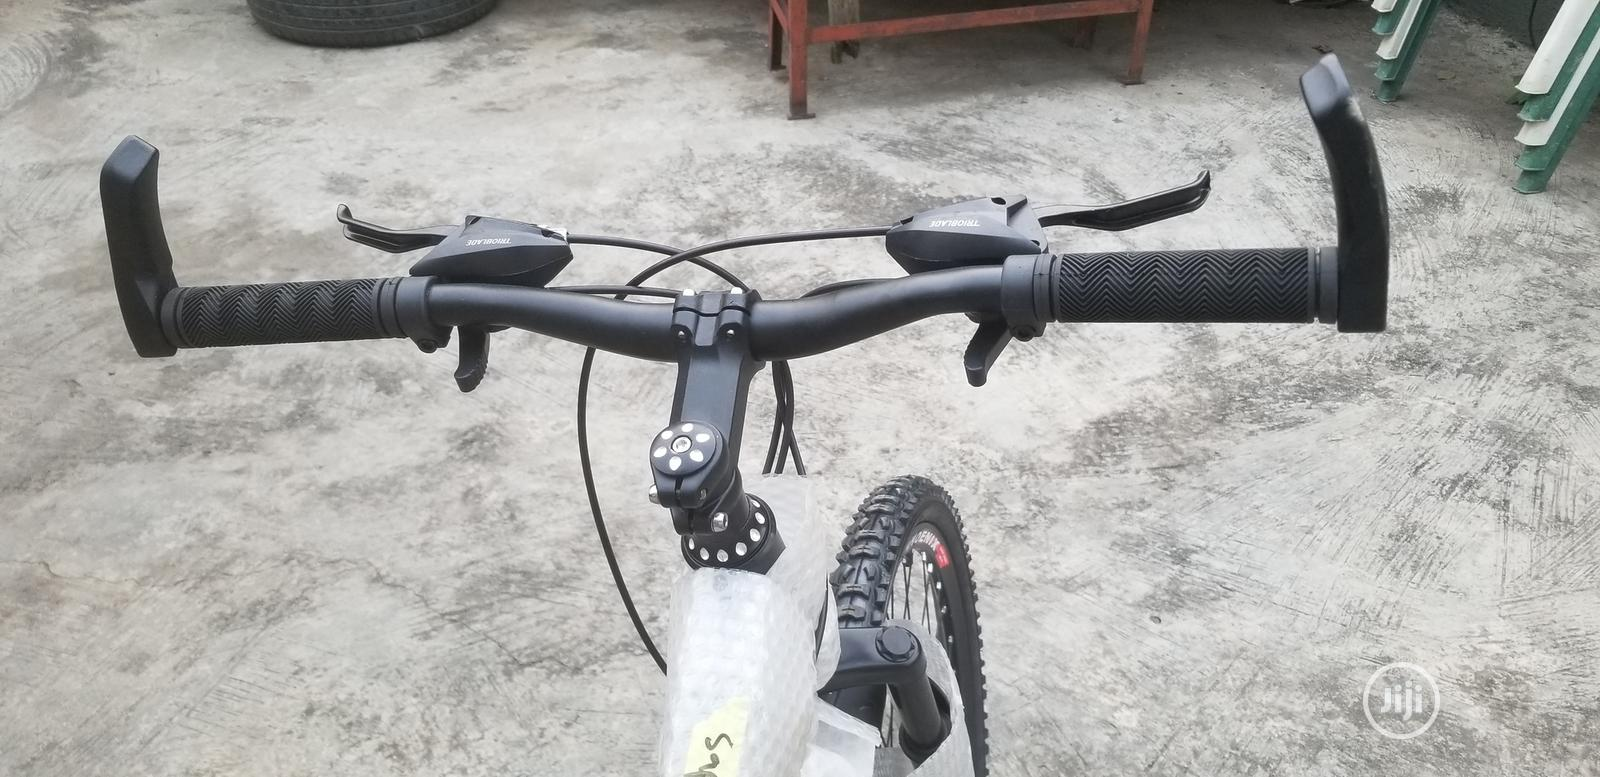 Phoenix Brand New Bicycle | Sports Equipment for sale in Magodo, Lagos State, Nigeria